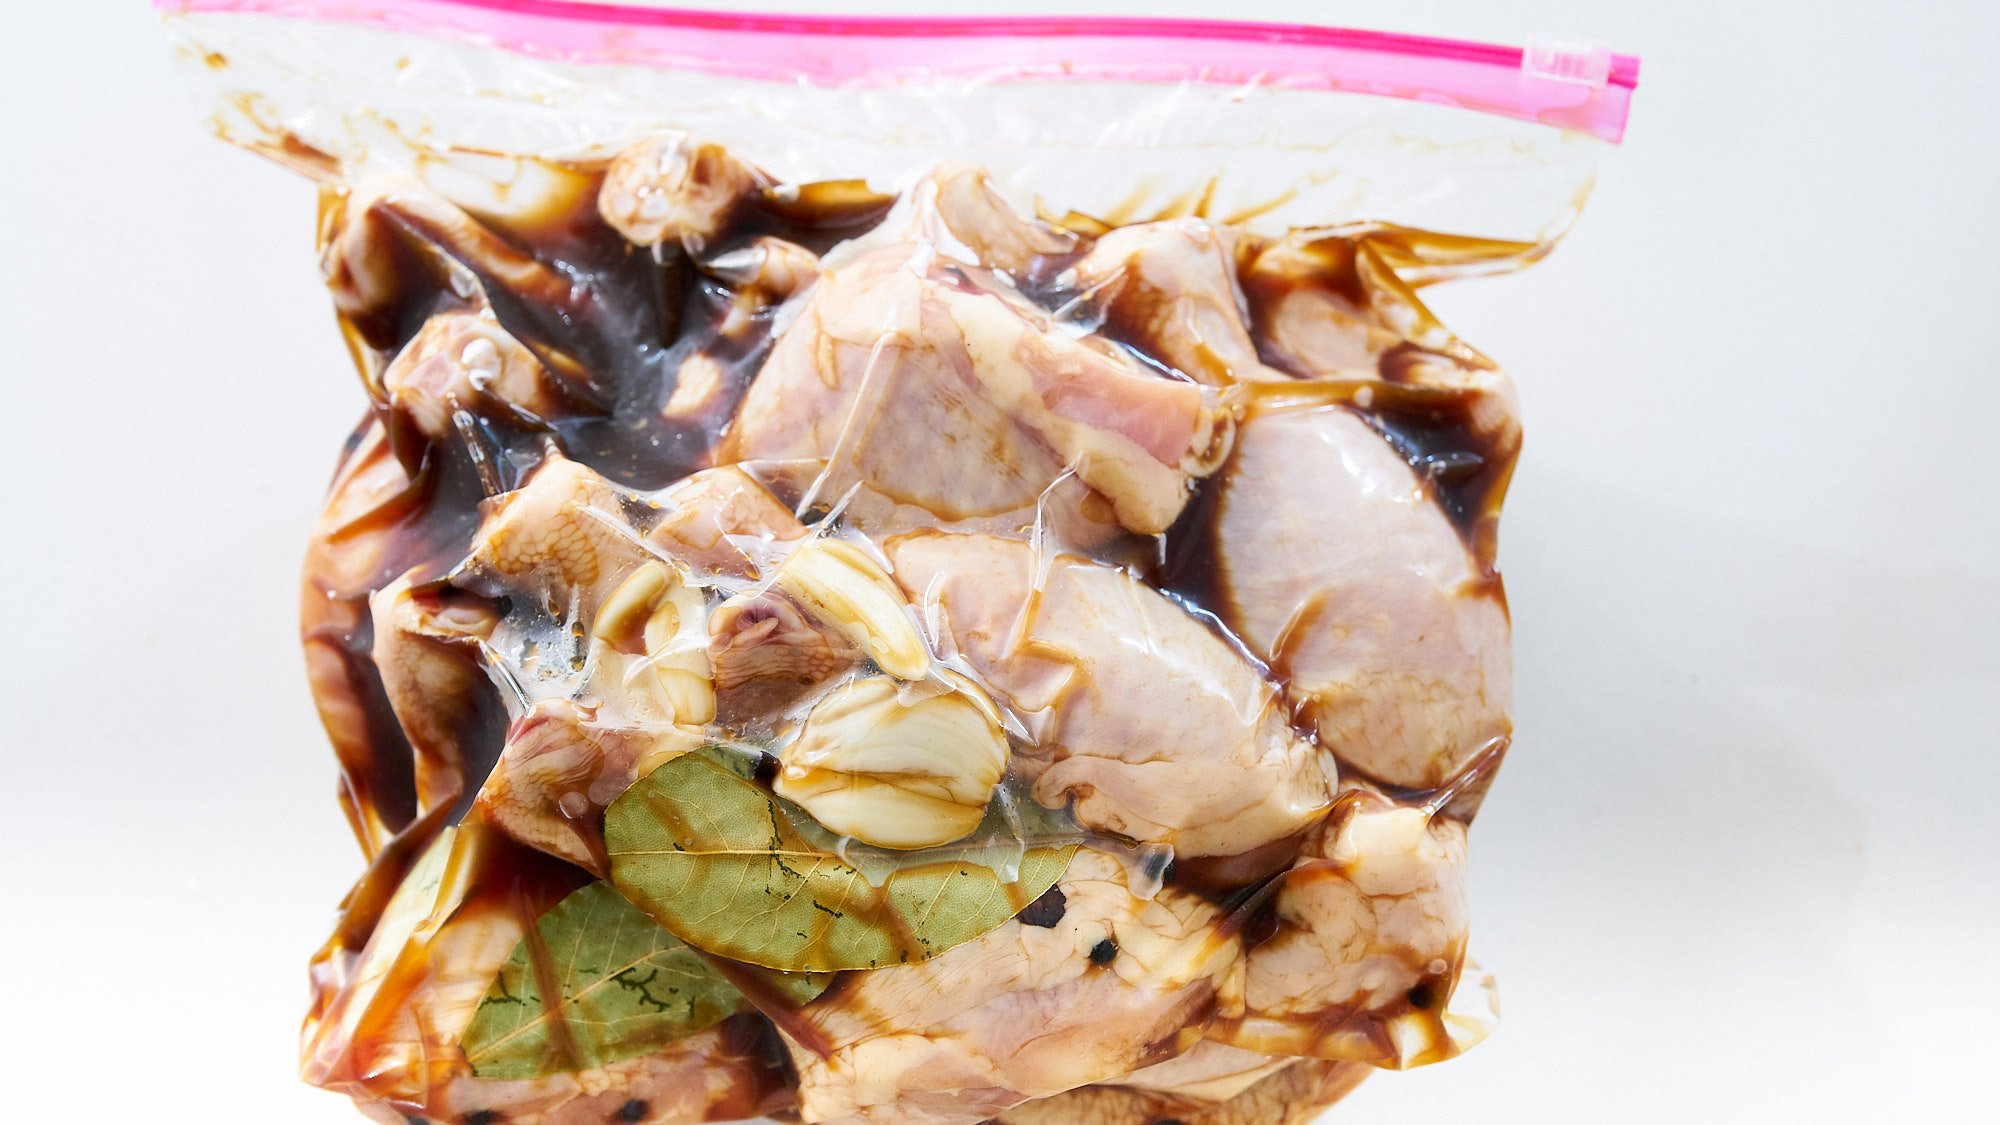 Marinate the chicken in soy sauce, vinegar, garlic, bay leaves, black pepper and coconut sugar overnight.